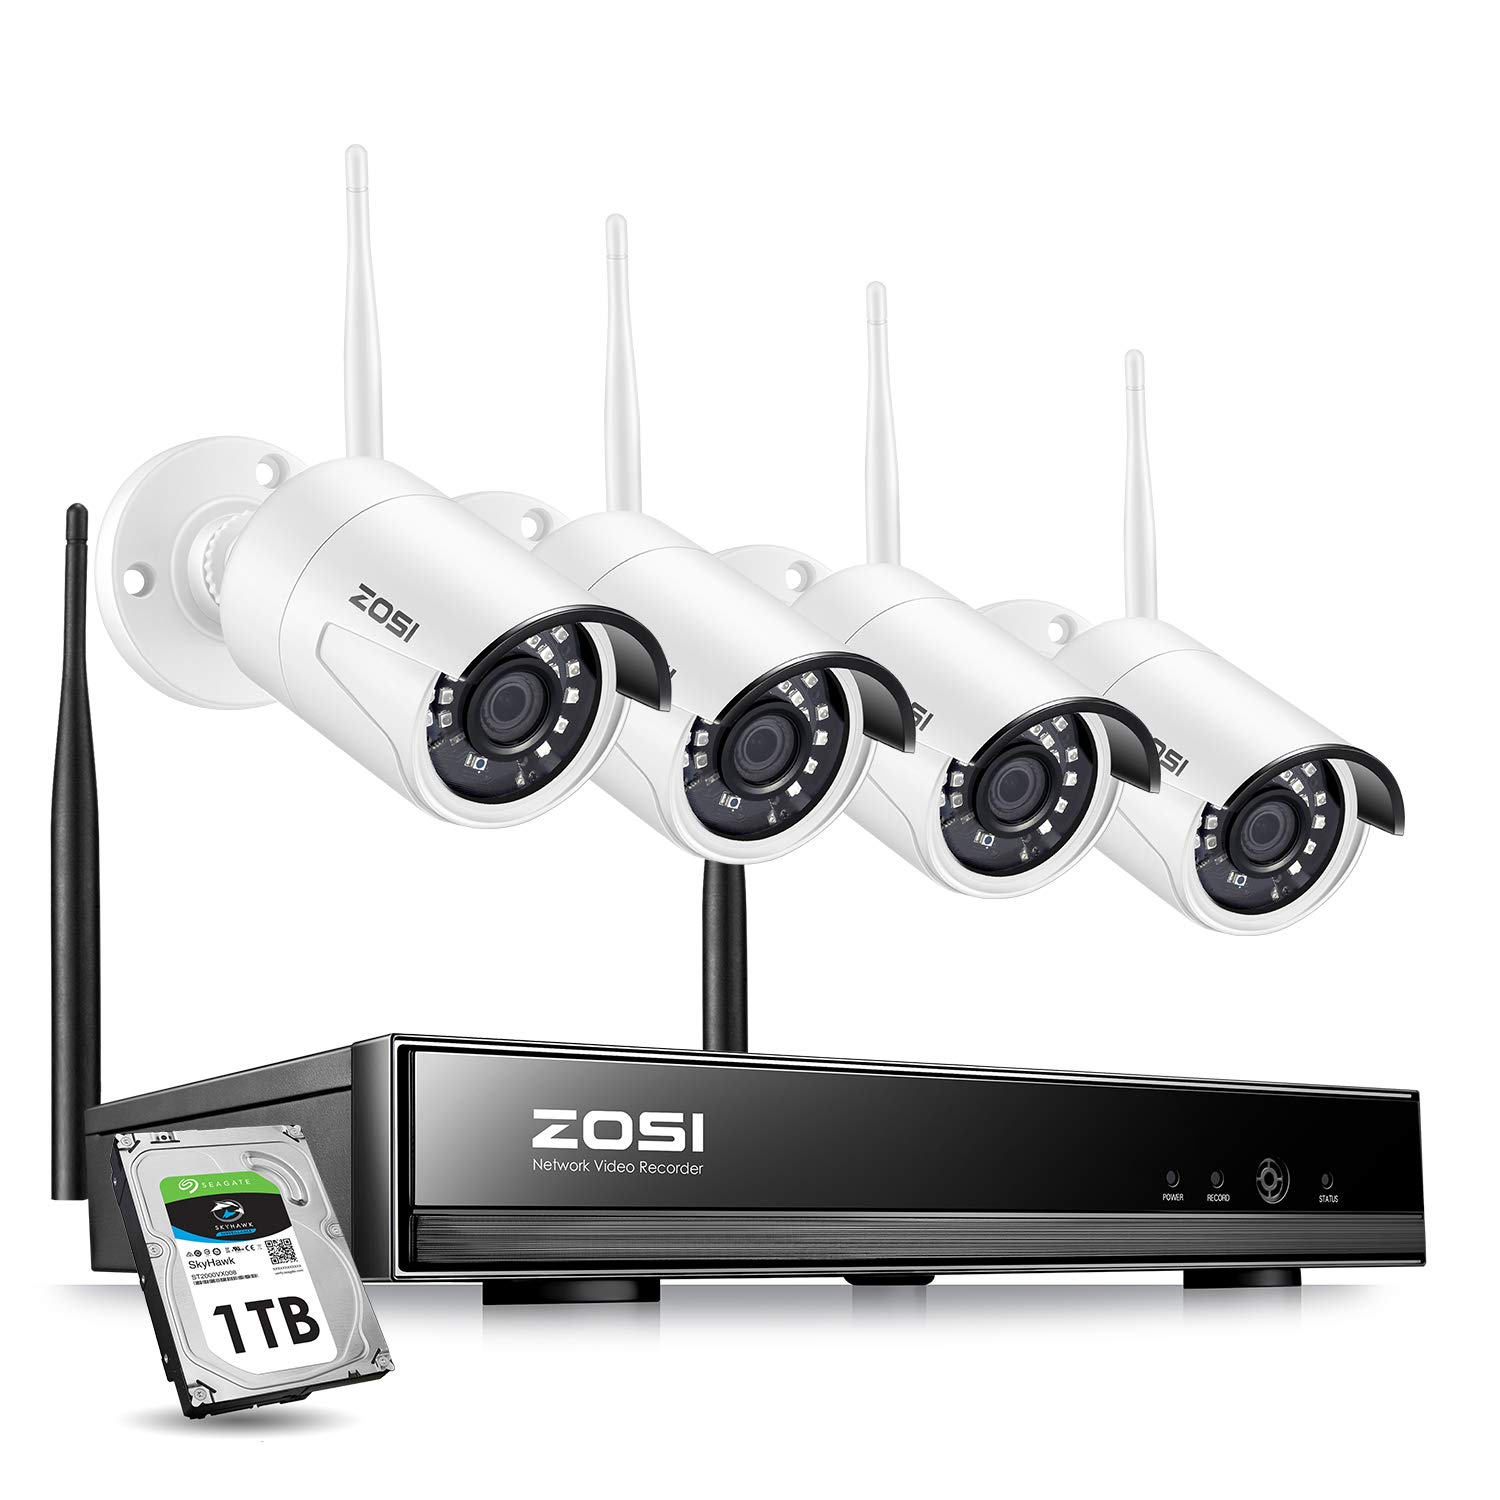 ZOSI Wireless Security Cameras System,H.265+ 8CH 1080P HD Network IP NVR with 1TB Hard Drive and 4pcs 2.0MP 1080P HD Wireless Weatherproof Indoor Outdoor IP Surveillance Cameras with 65ft Night Vision by ZOSI